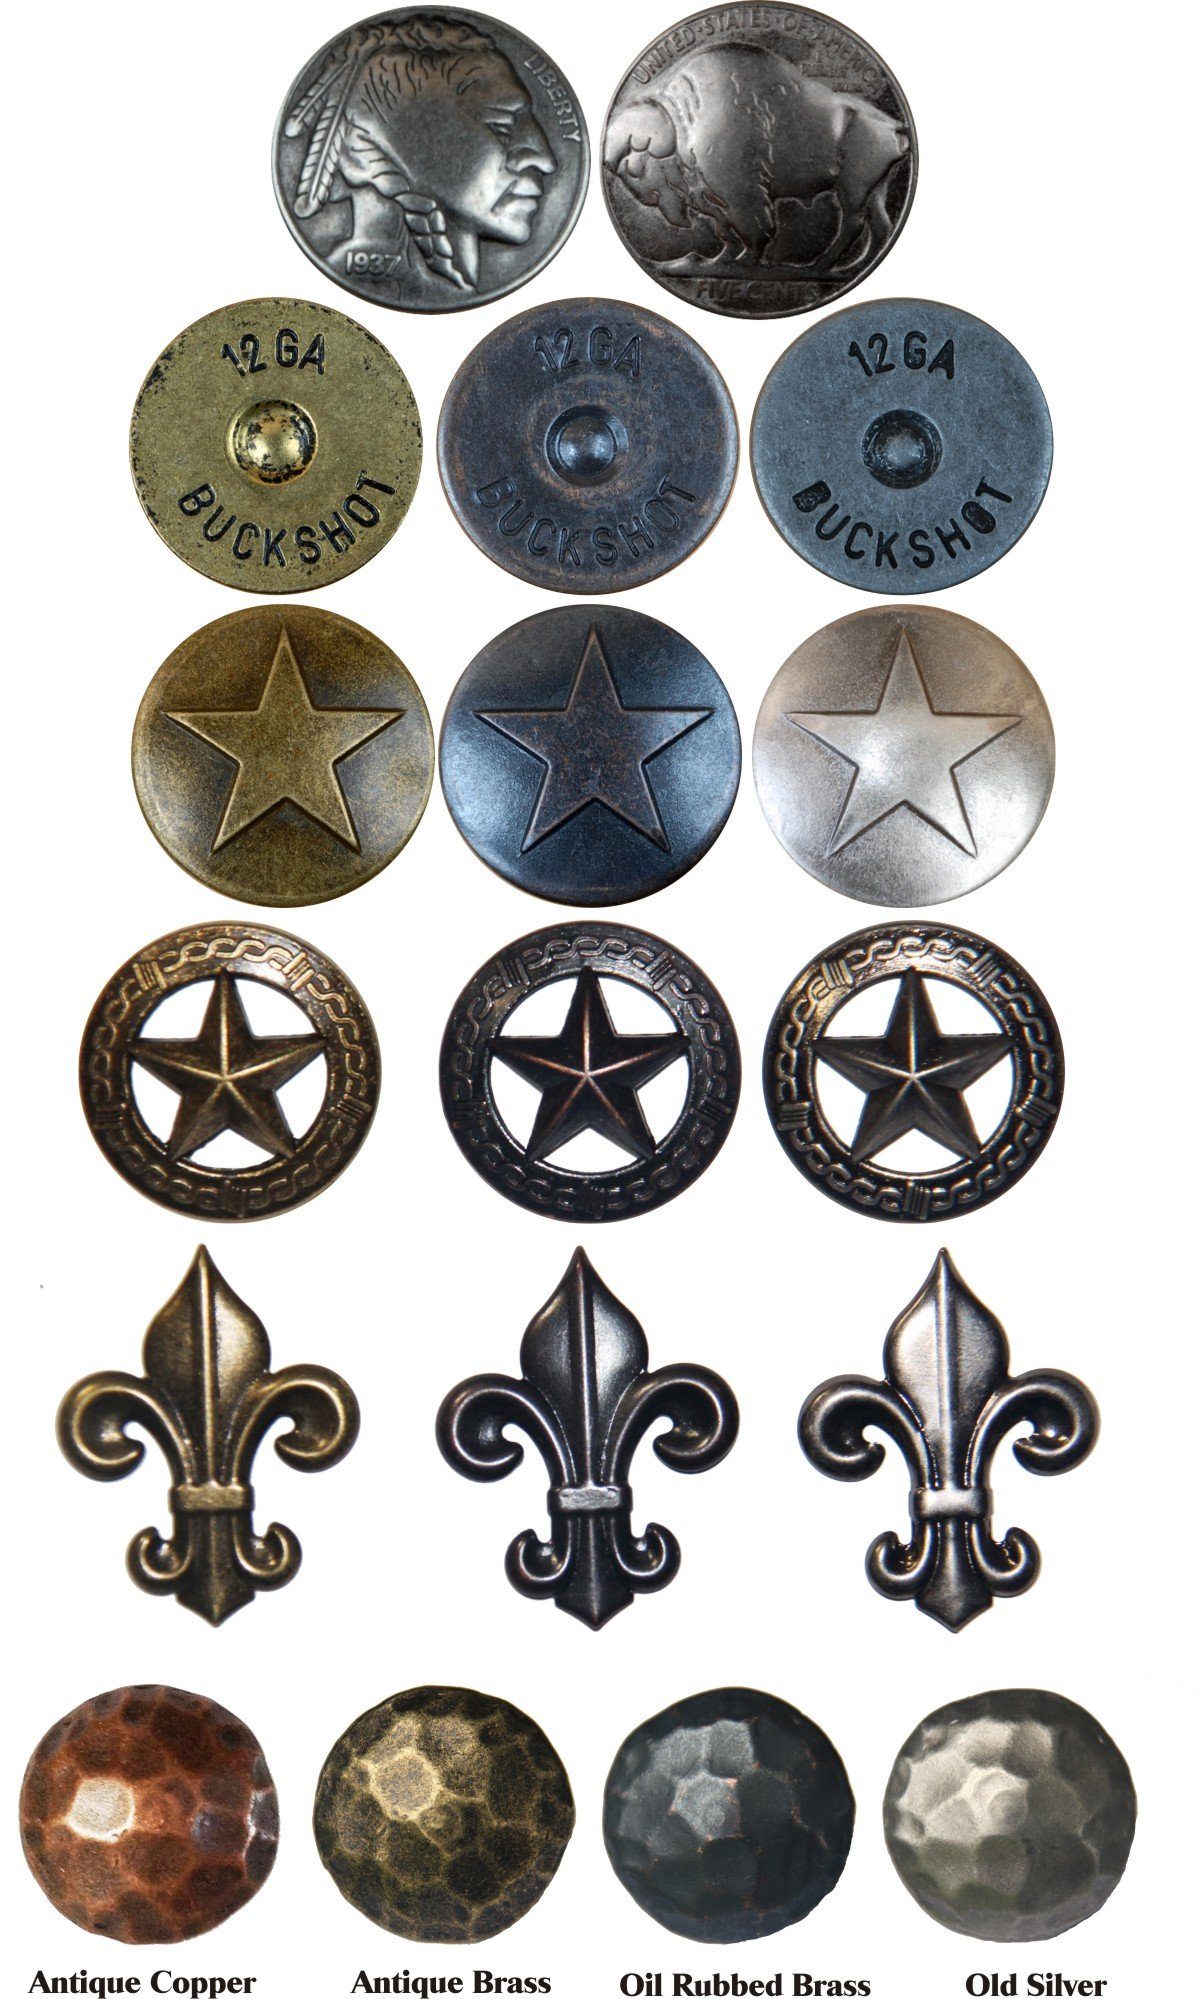 400 small Clavos rustic hamered nailheads in Old Silver about 3/4 inch by Genuine Texas Brand (Image #5)